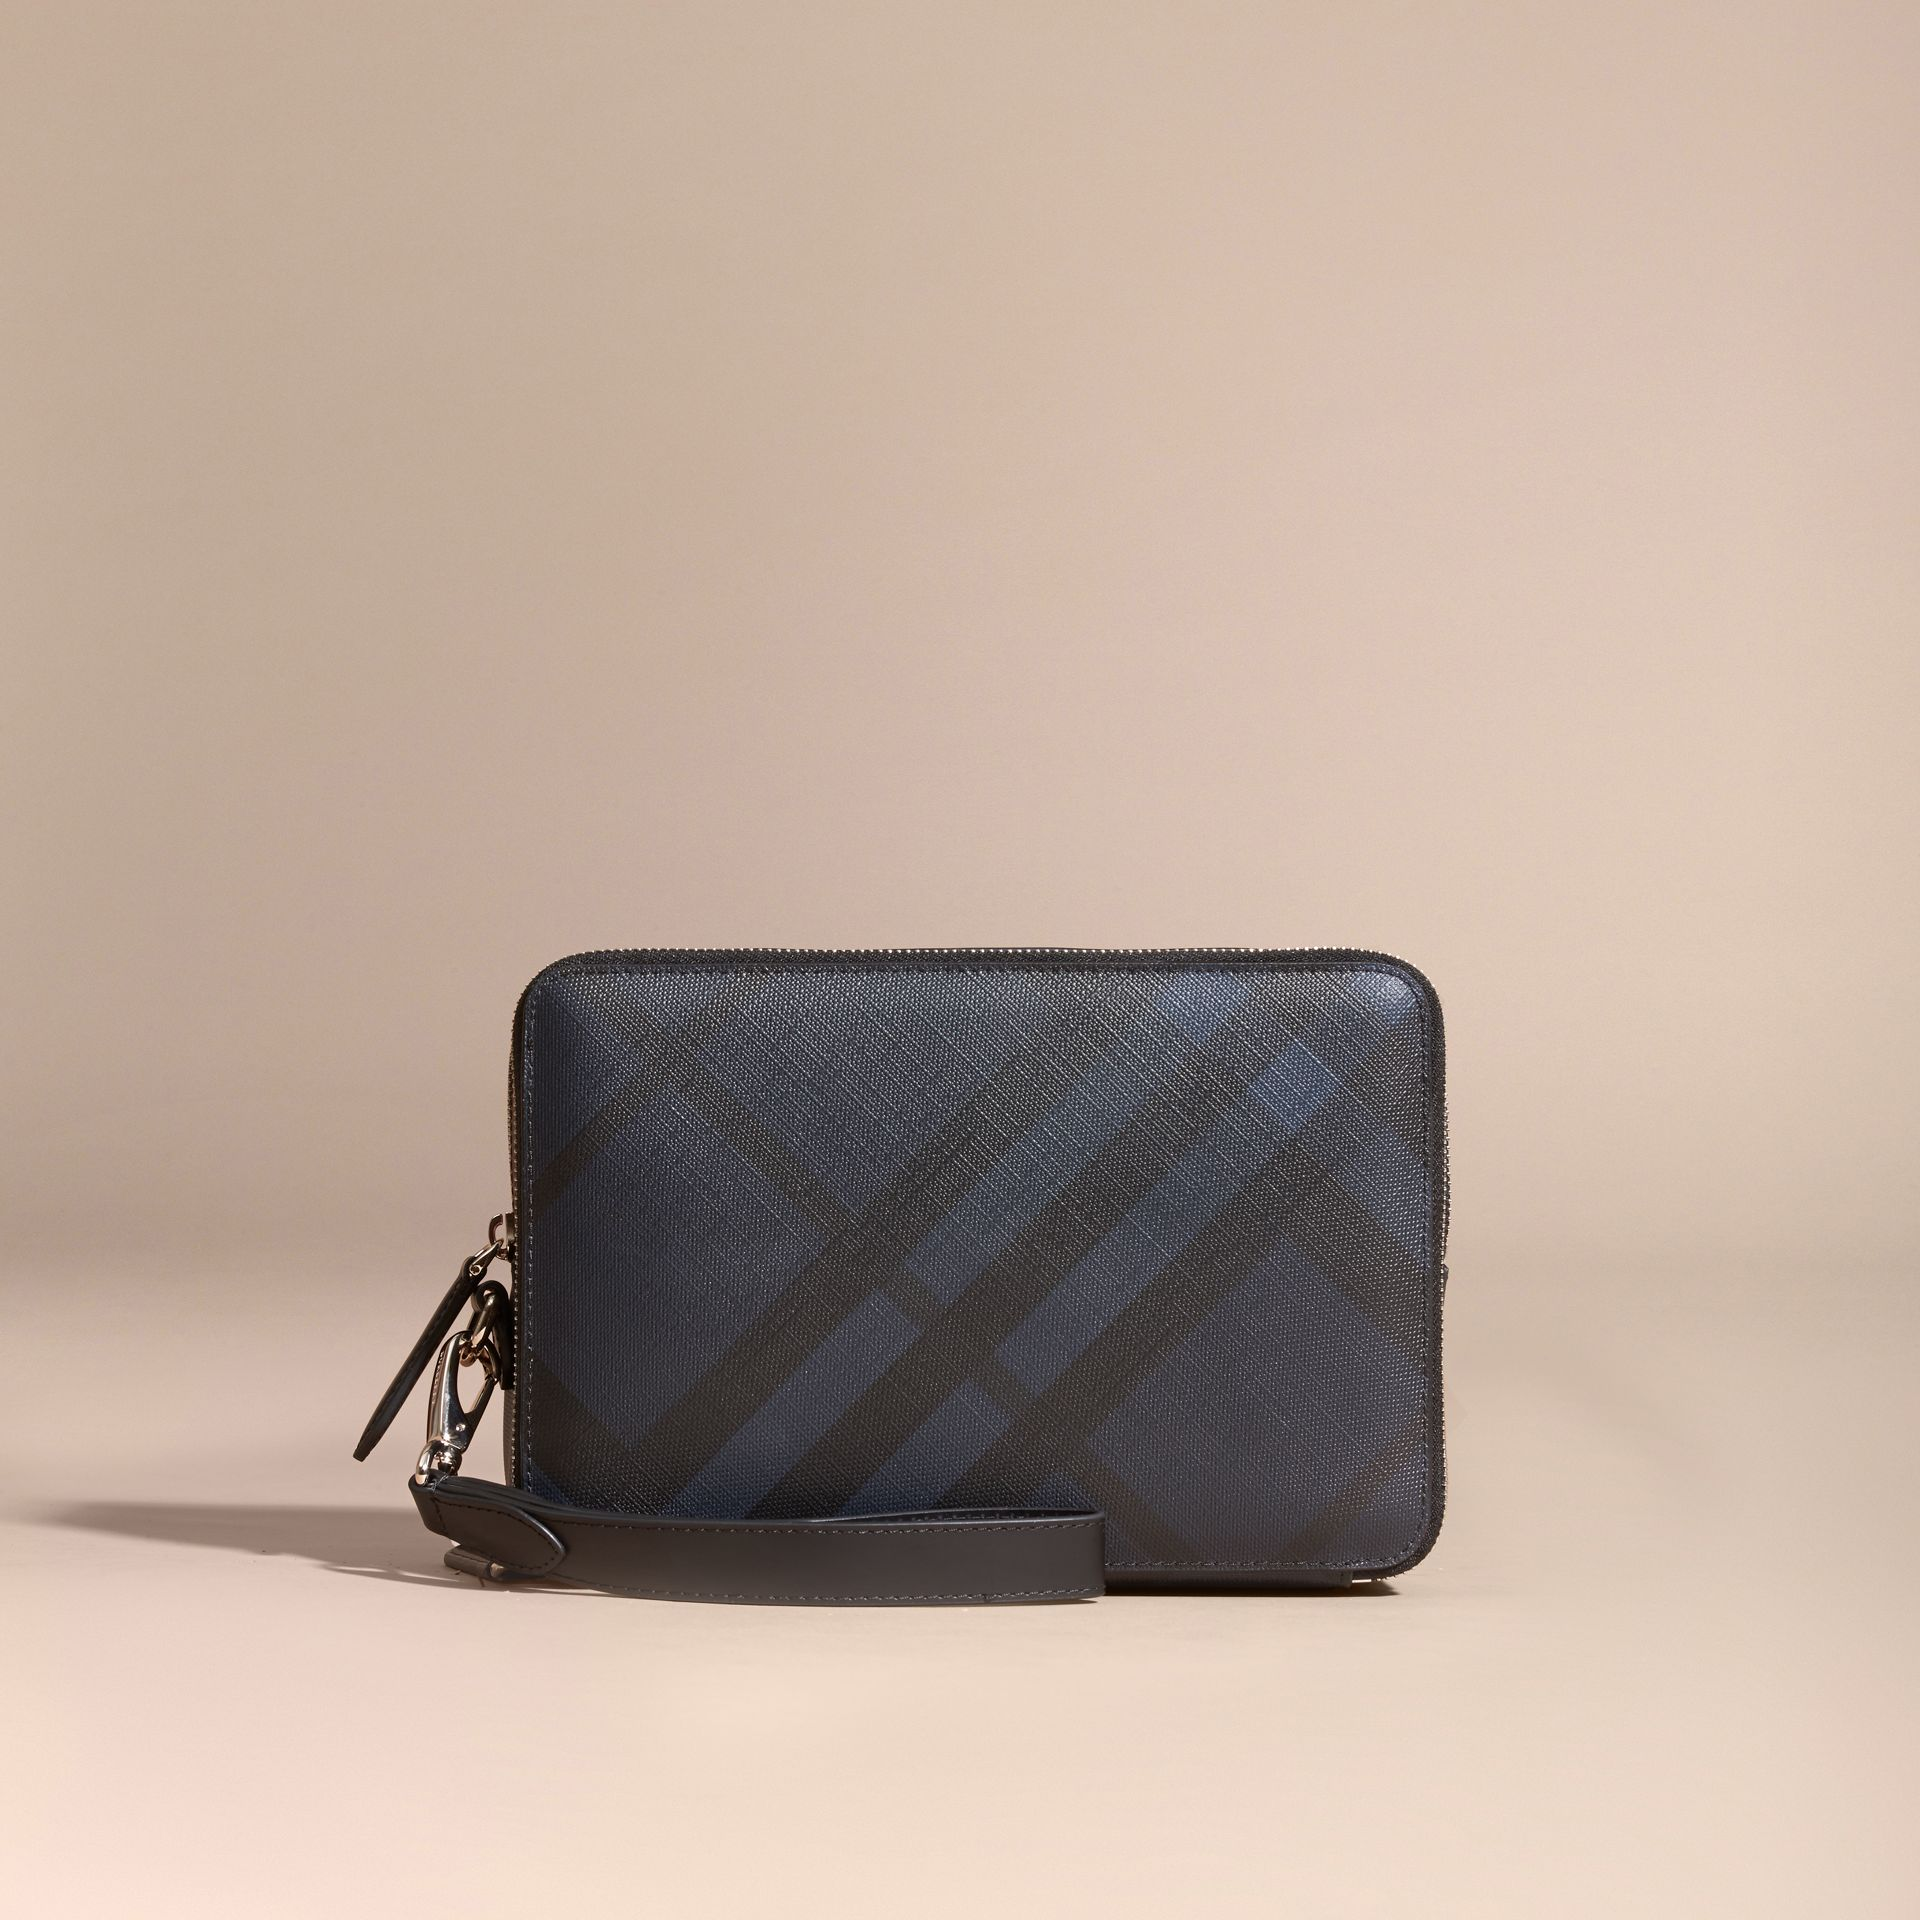 Leather-trimmed London Check Pouch in Navy/black - Men | Burberry Australia - gallery image 6